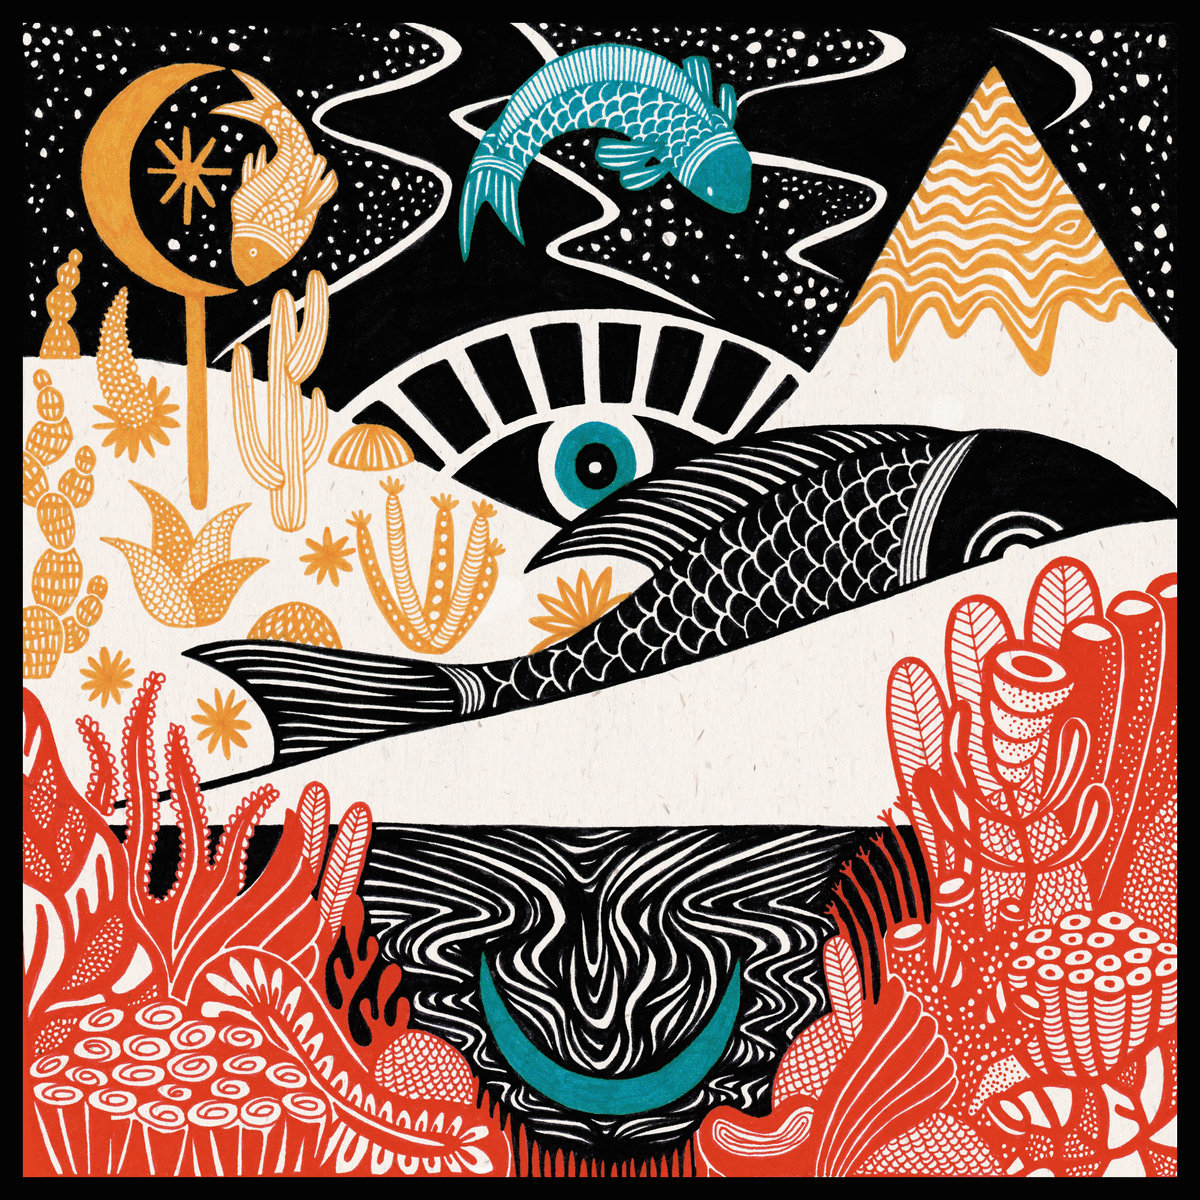 YAZZ AHMED - THE SPACE BETWEEN THE FISH & THE MOON (NAIM RECORD, 2017)